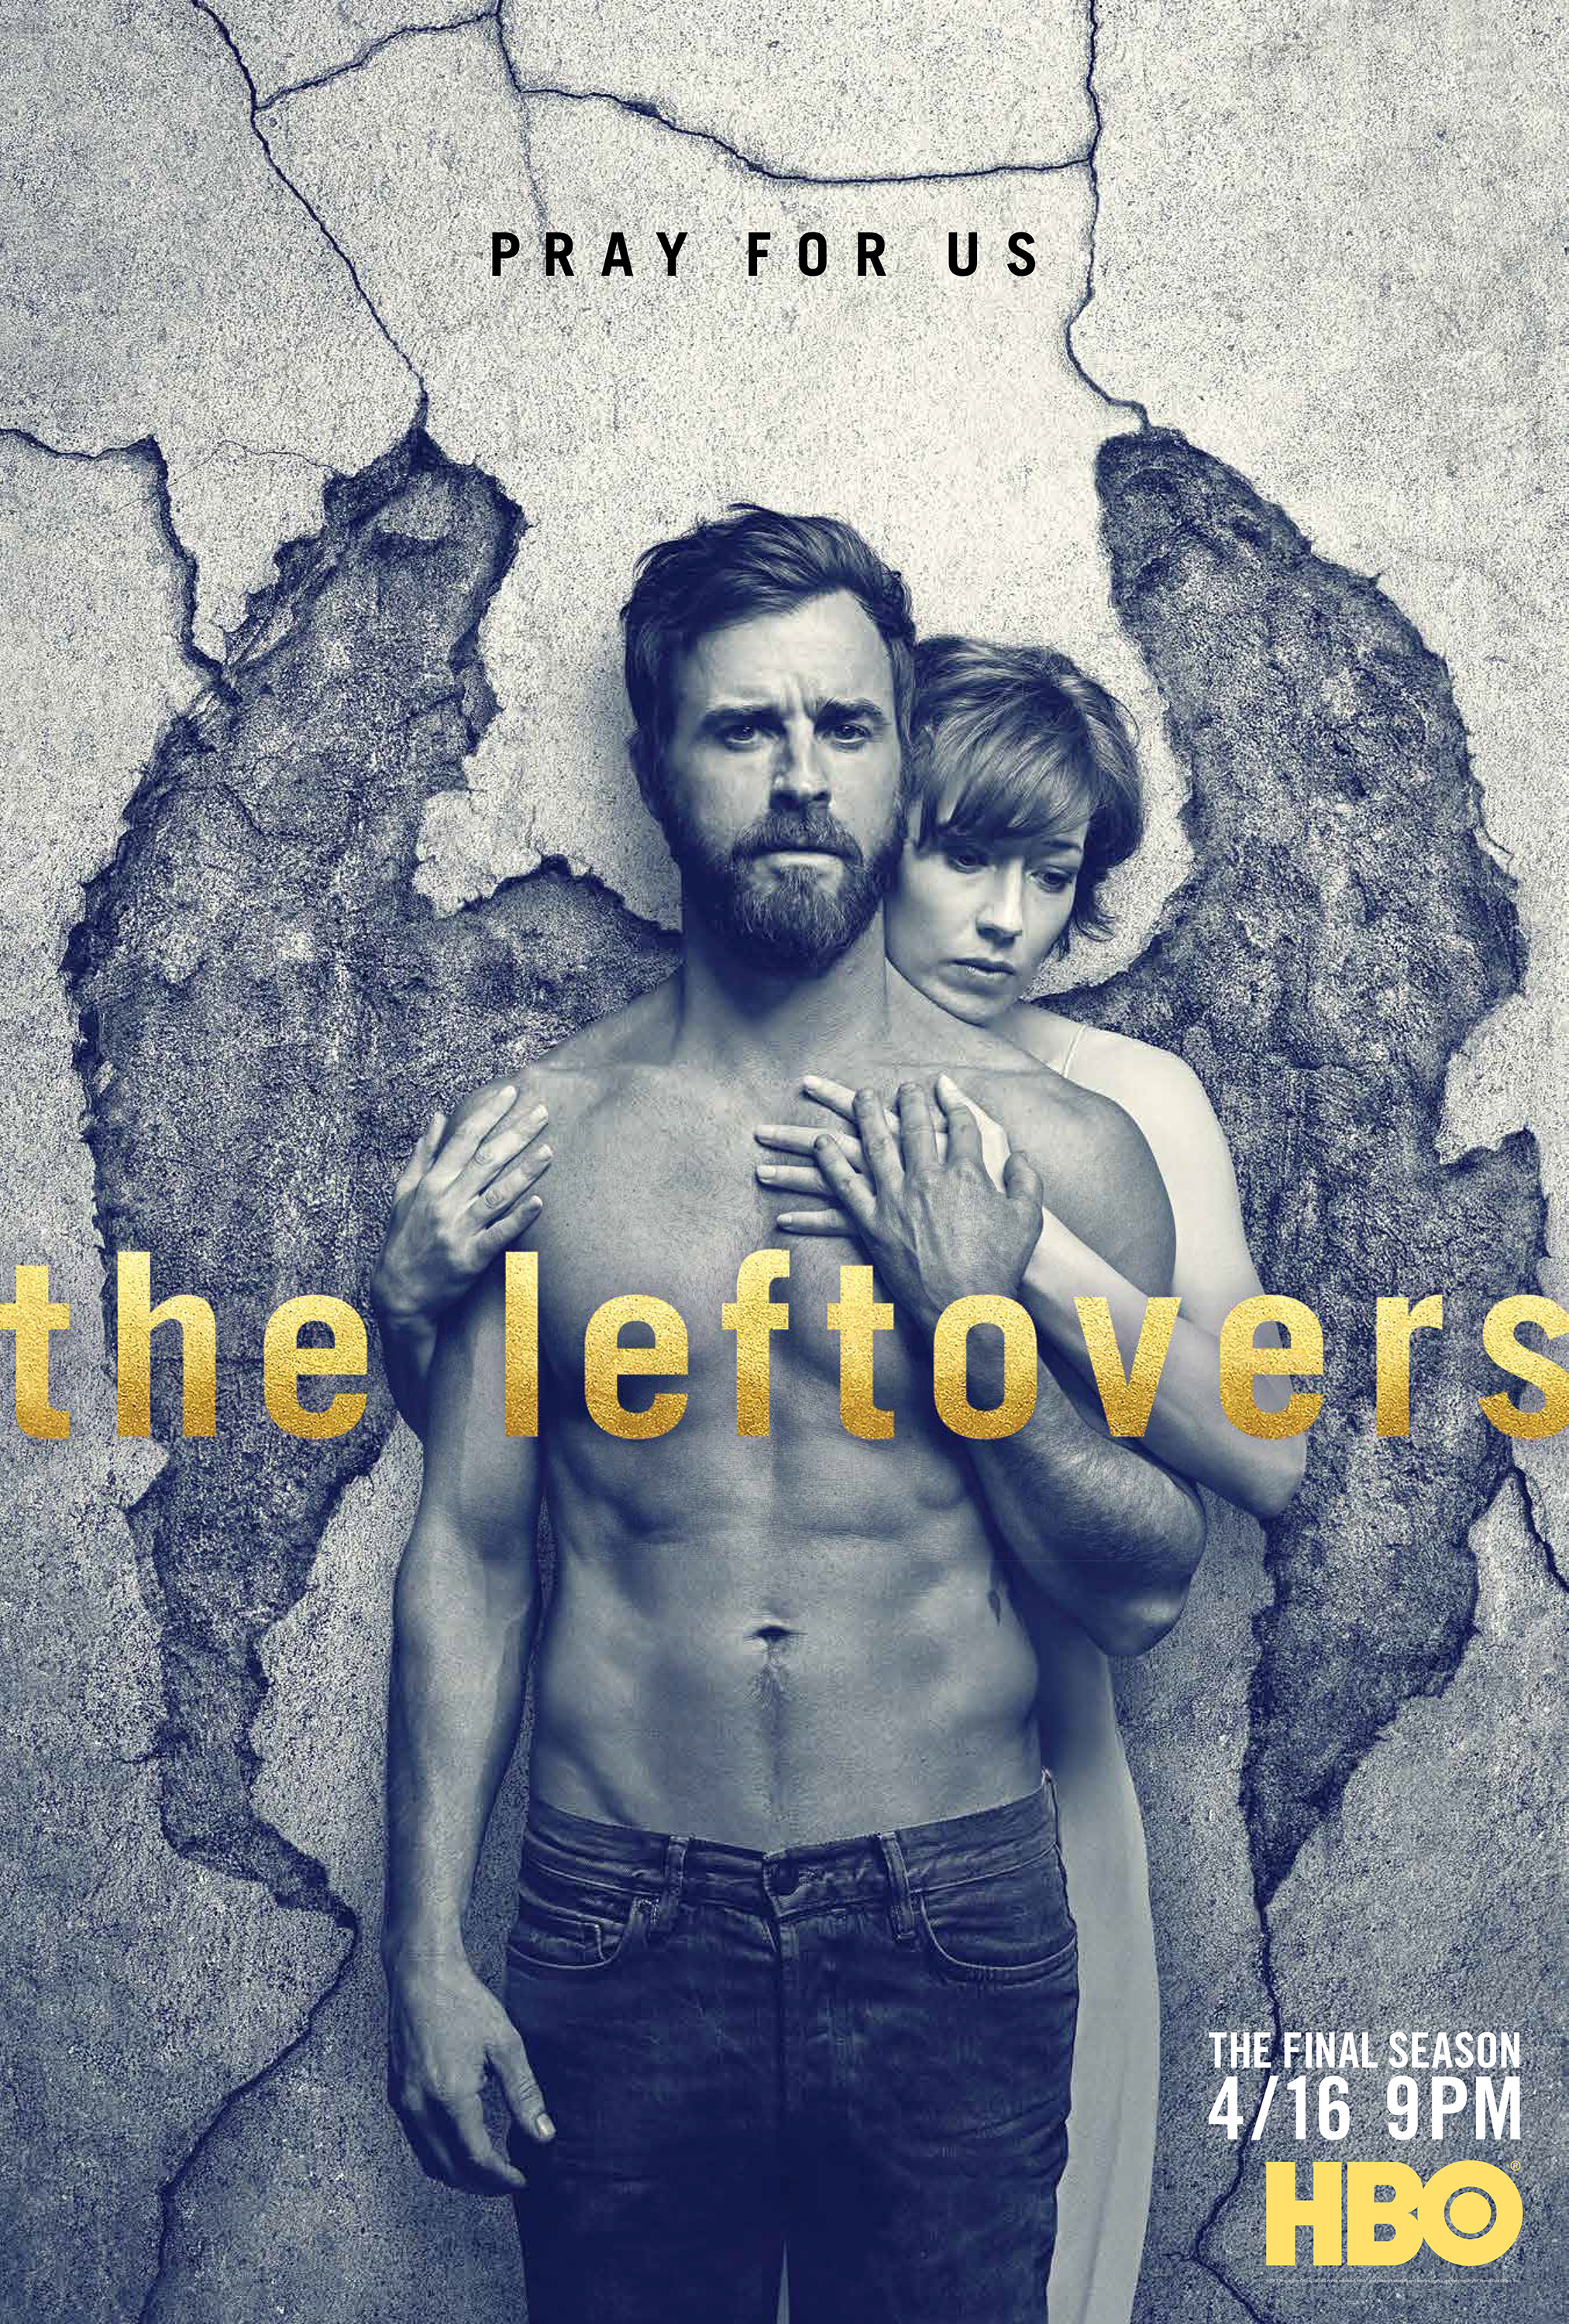 http://www.indiewire.com/wp-content/uploads/2017/03/the-leftovers-final-season-key-art.jpg